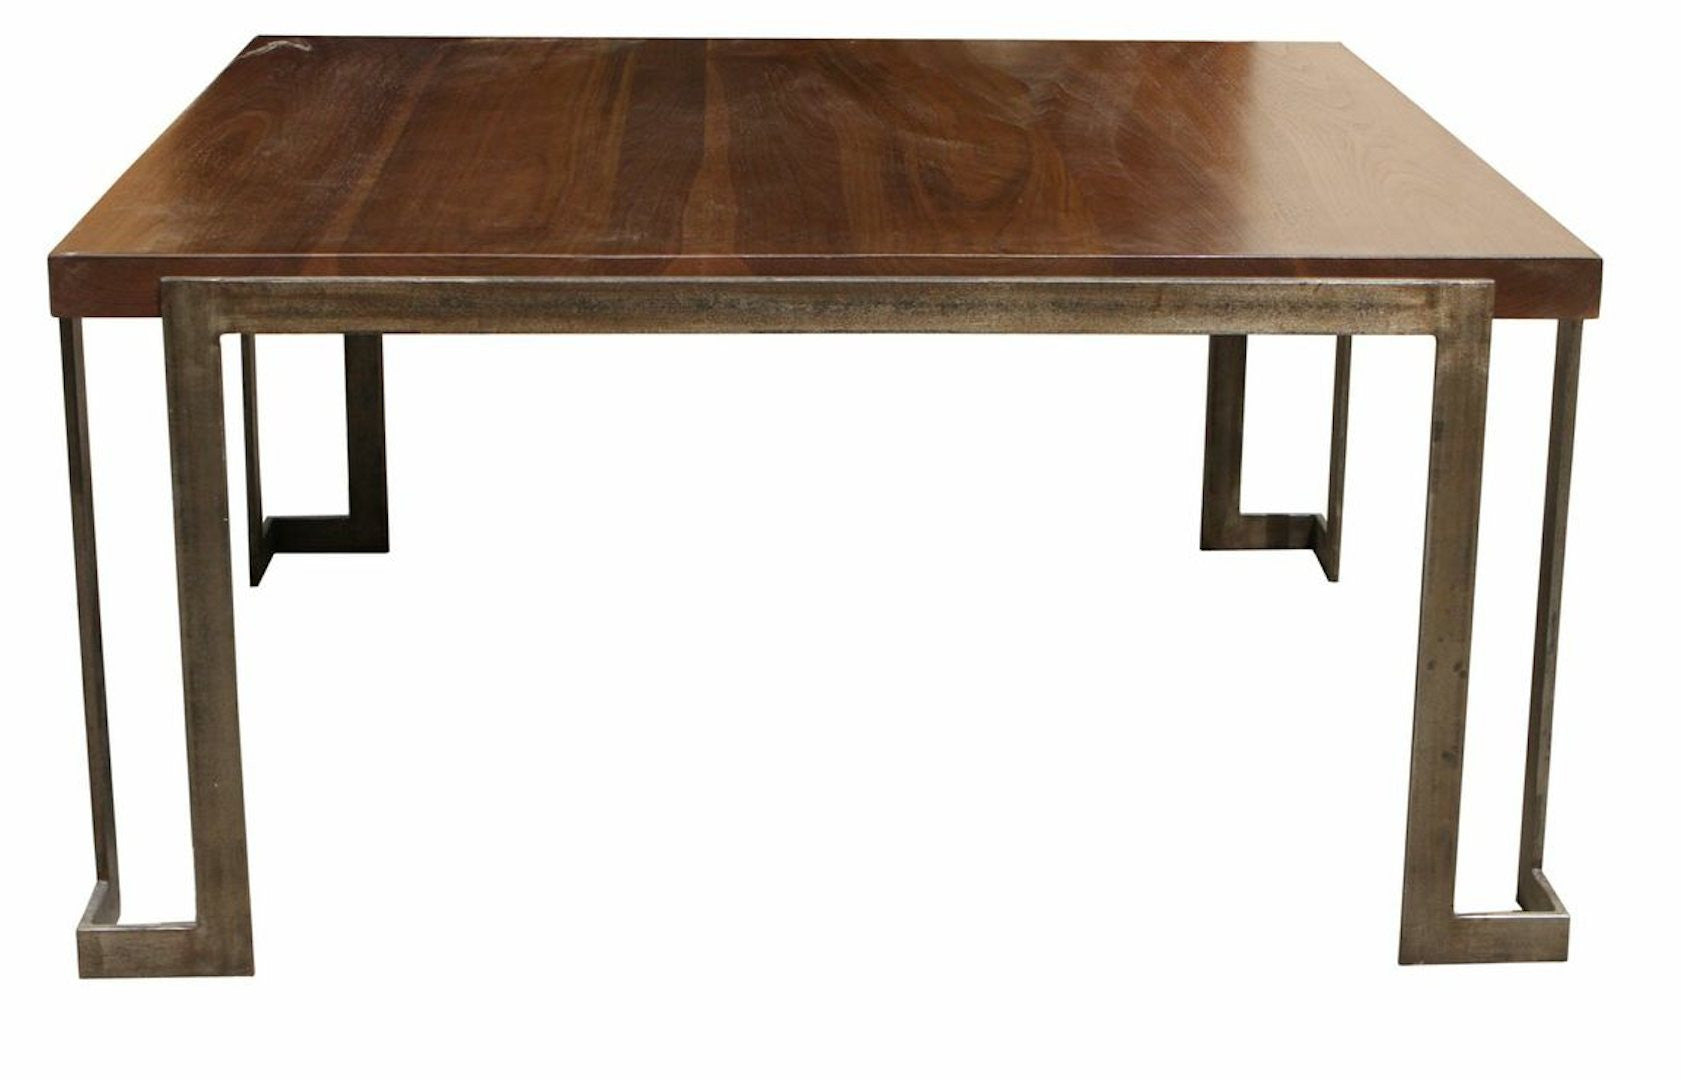 wooden coffee tables. Modern Metal And Wood Coffee Table Wooden Tables